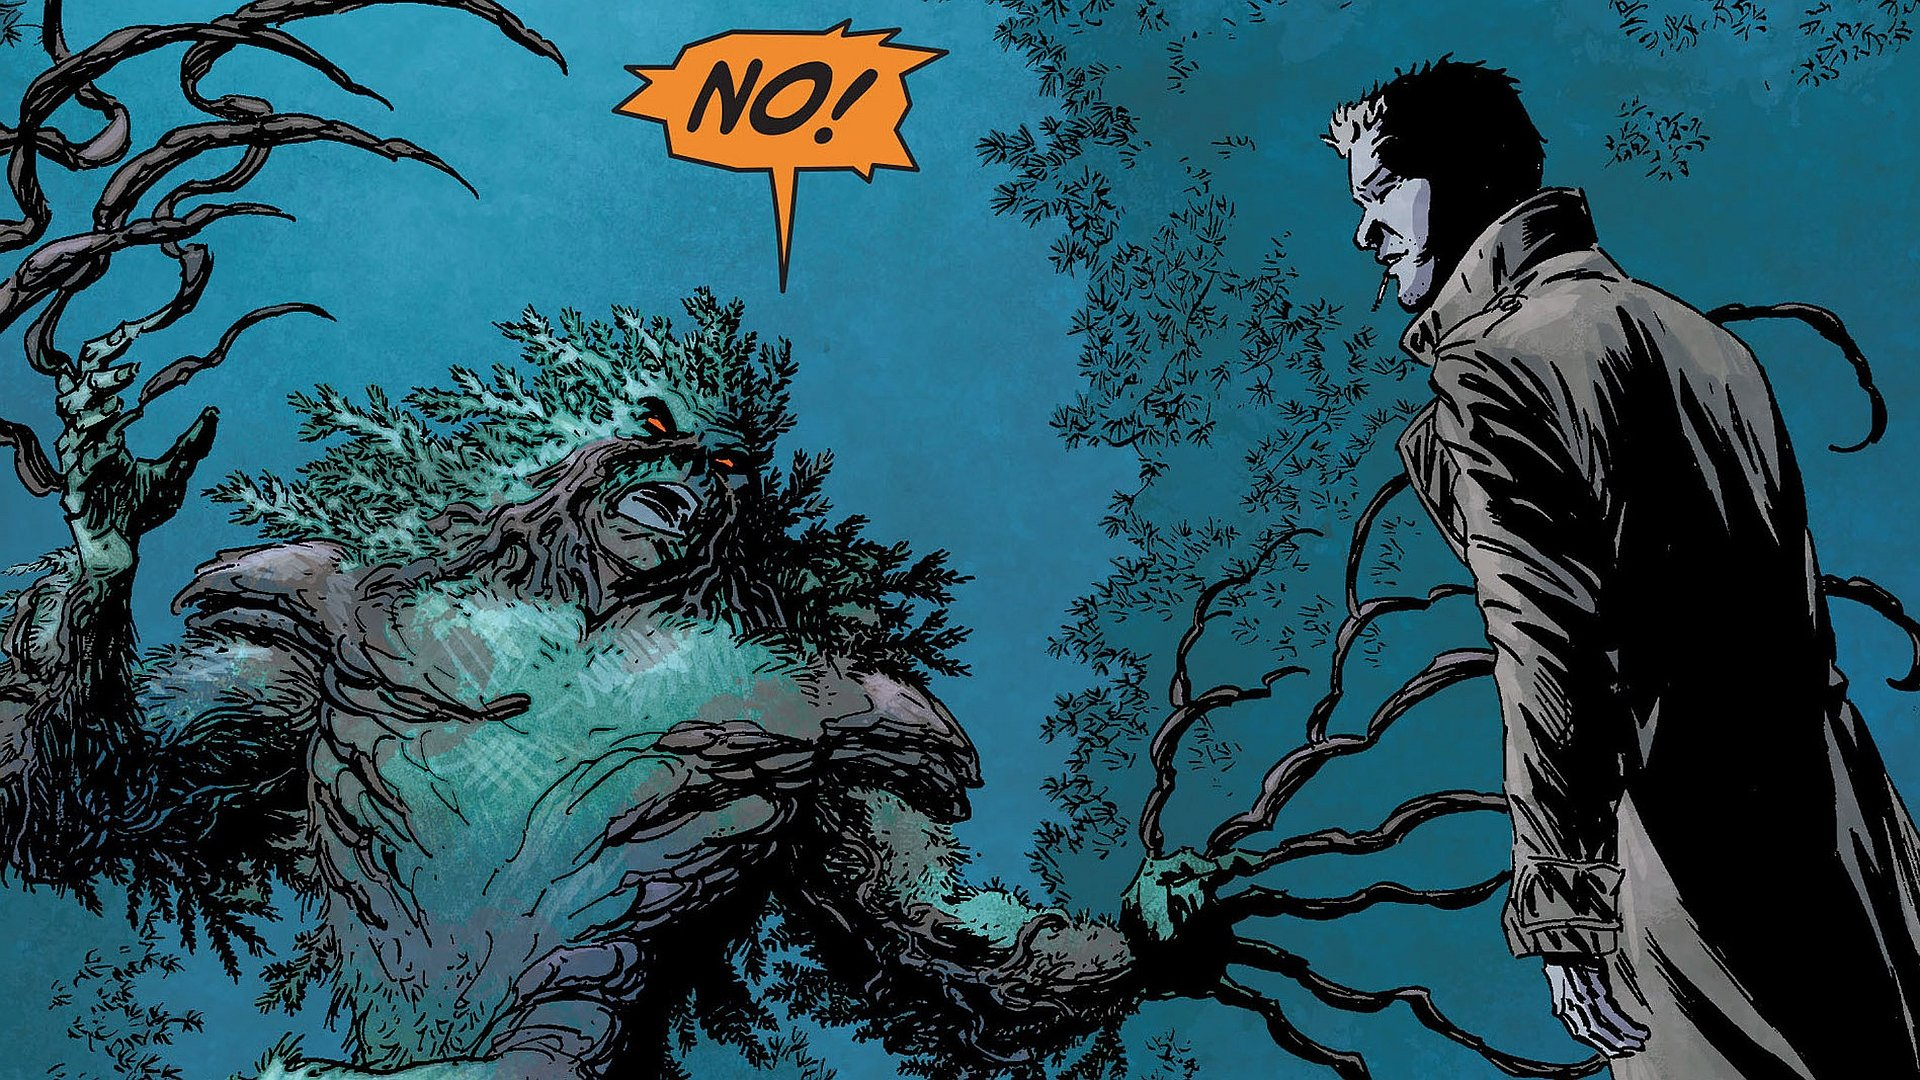 Swamp Thing Wallpapers Hd For Desktop Backgrounds